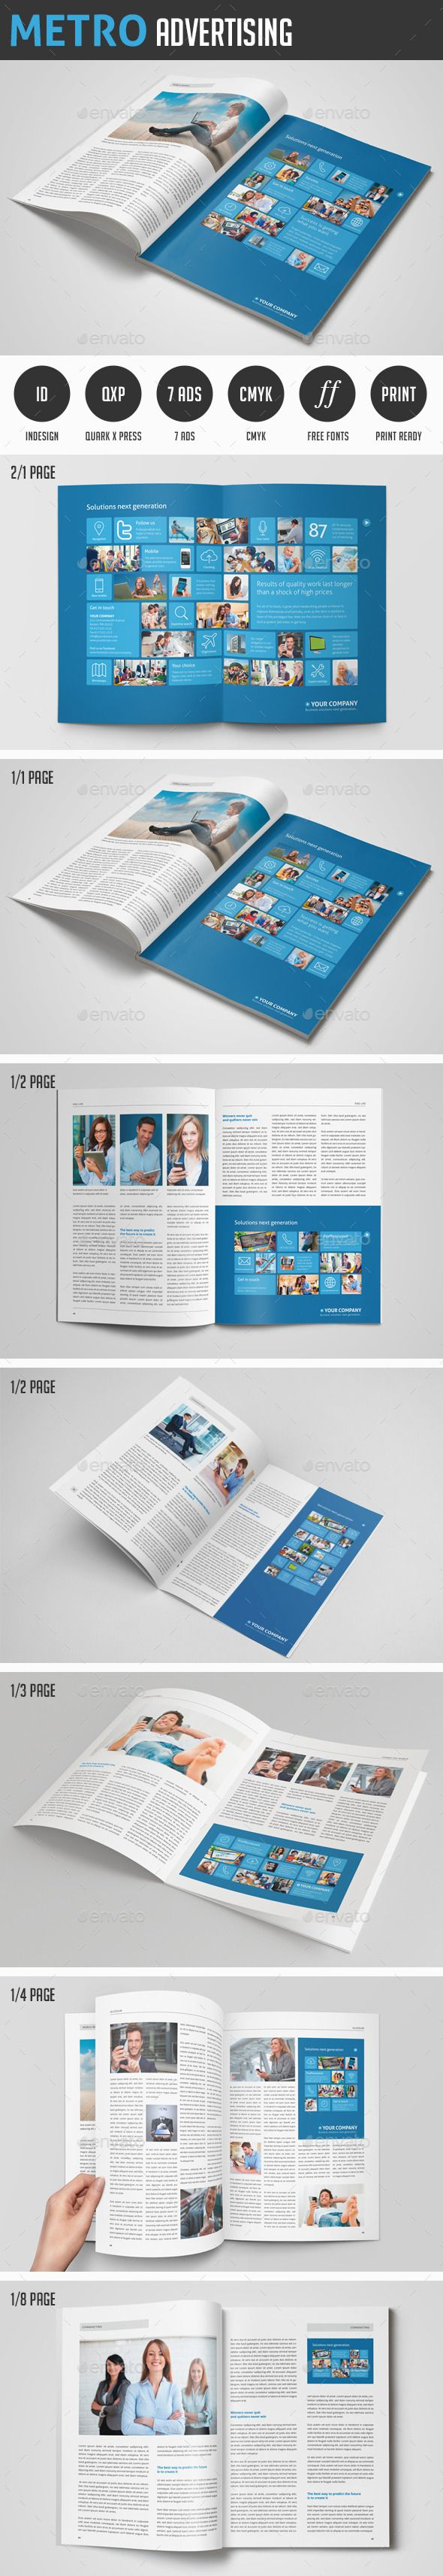 Metro Advertising Advertising Campaign Flyer Template And - 1 3 page flyer template